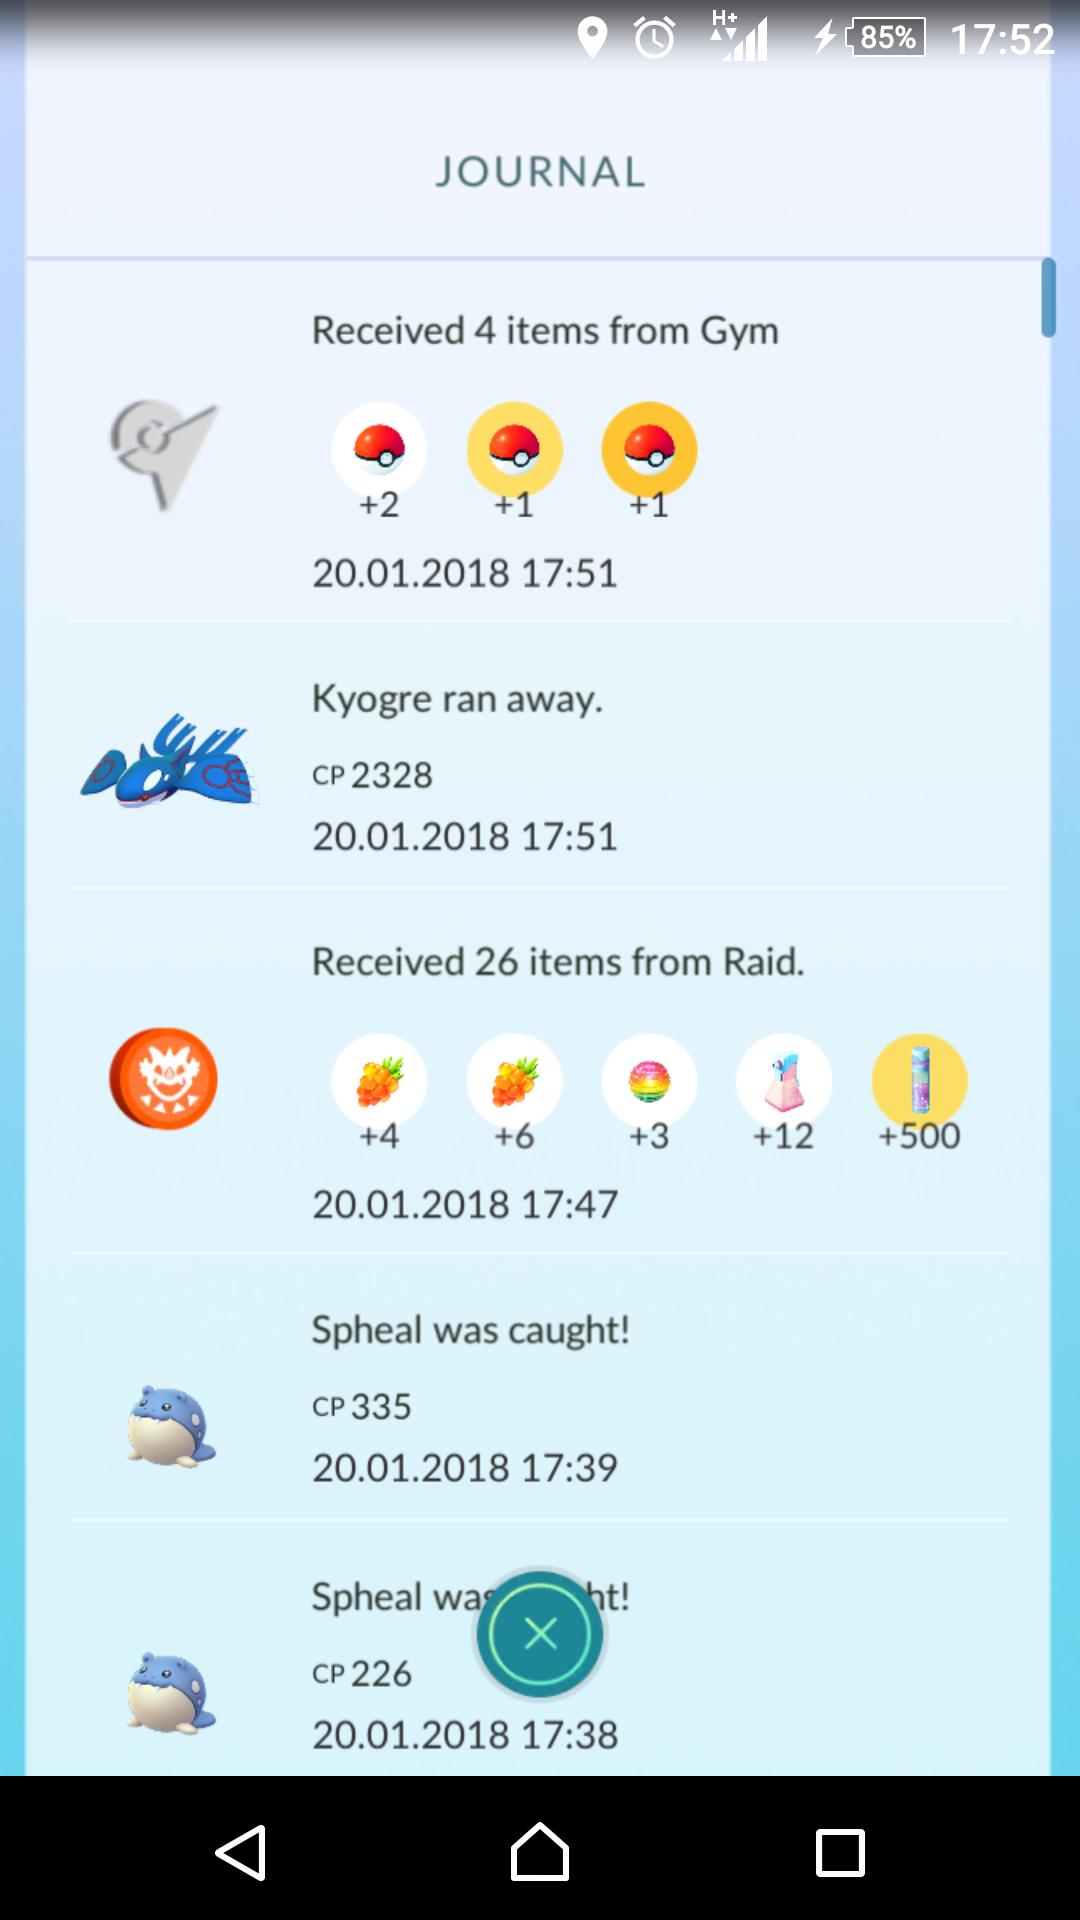 I had a 2328CP Kyogre ran away today     | Pokemon GO Wiki